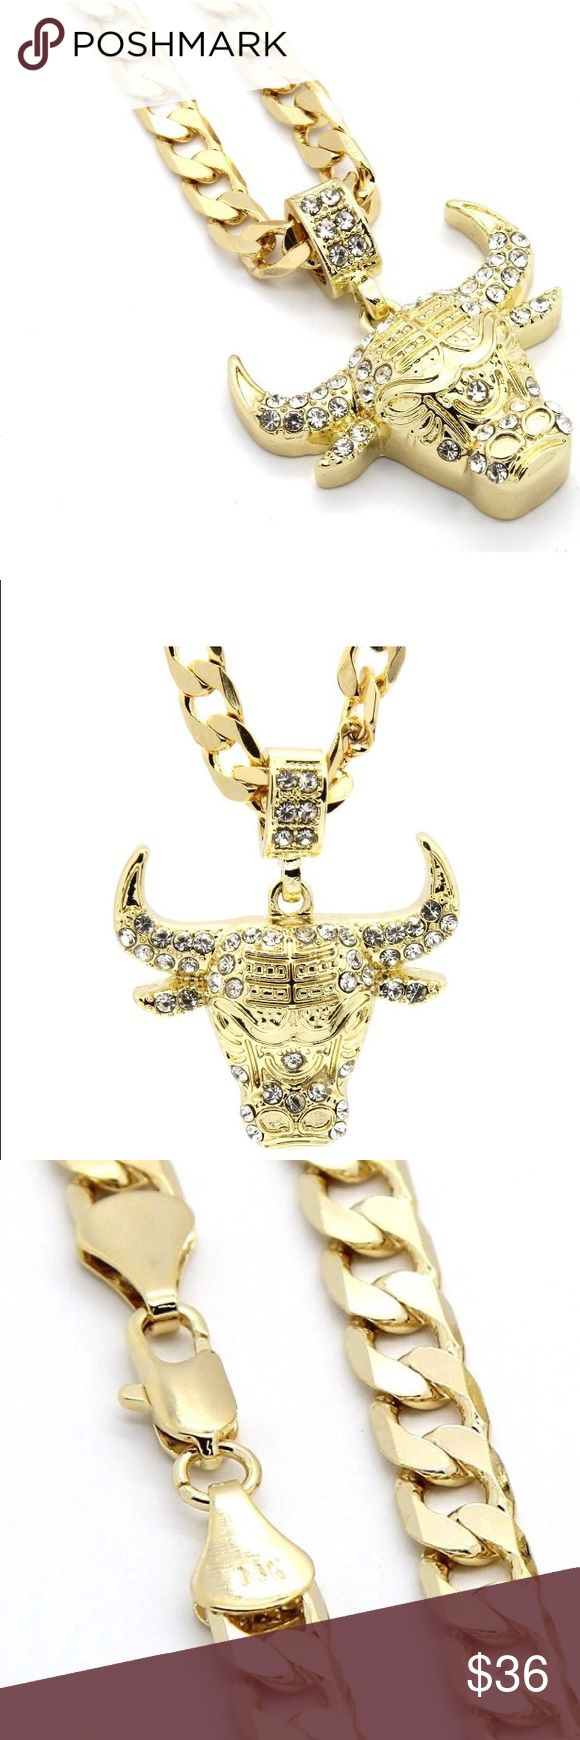 "Mens Gold Tone Iced Out Bull Small Pendant Mens Gold Tone Iced Out Bull Small Pendant with 5mm 24"" Cuban Chain Necklace Gold Toe Accessories Jewelry"